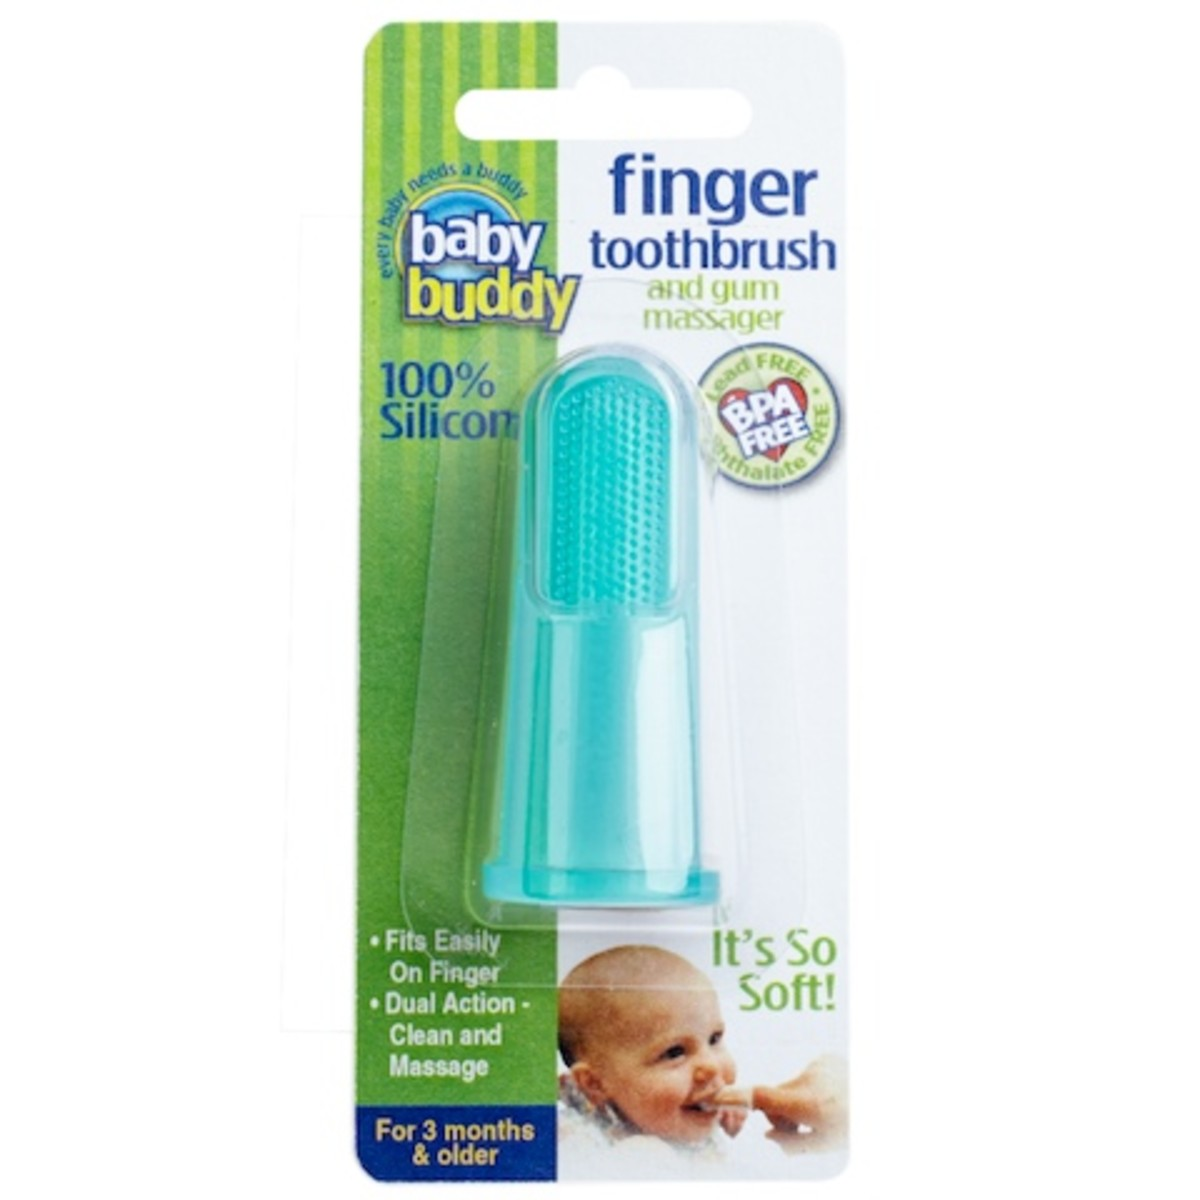 Toothbrush for infants